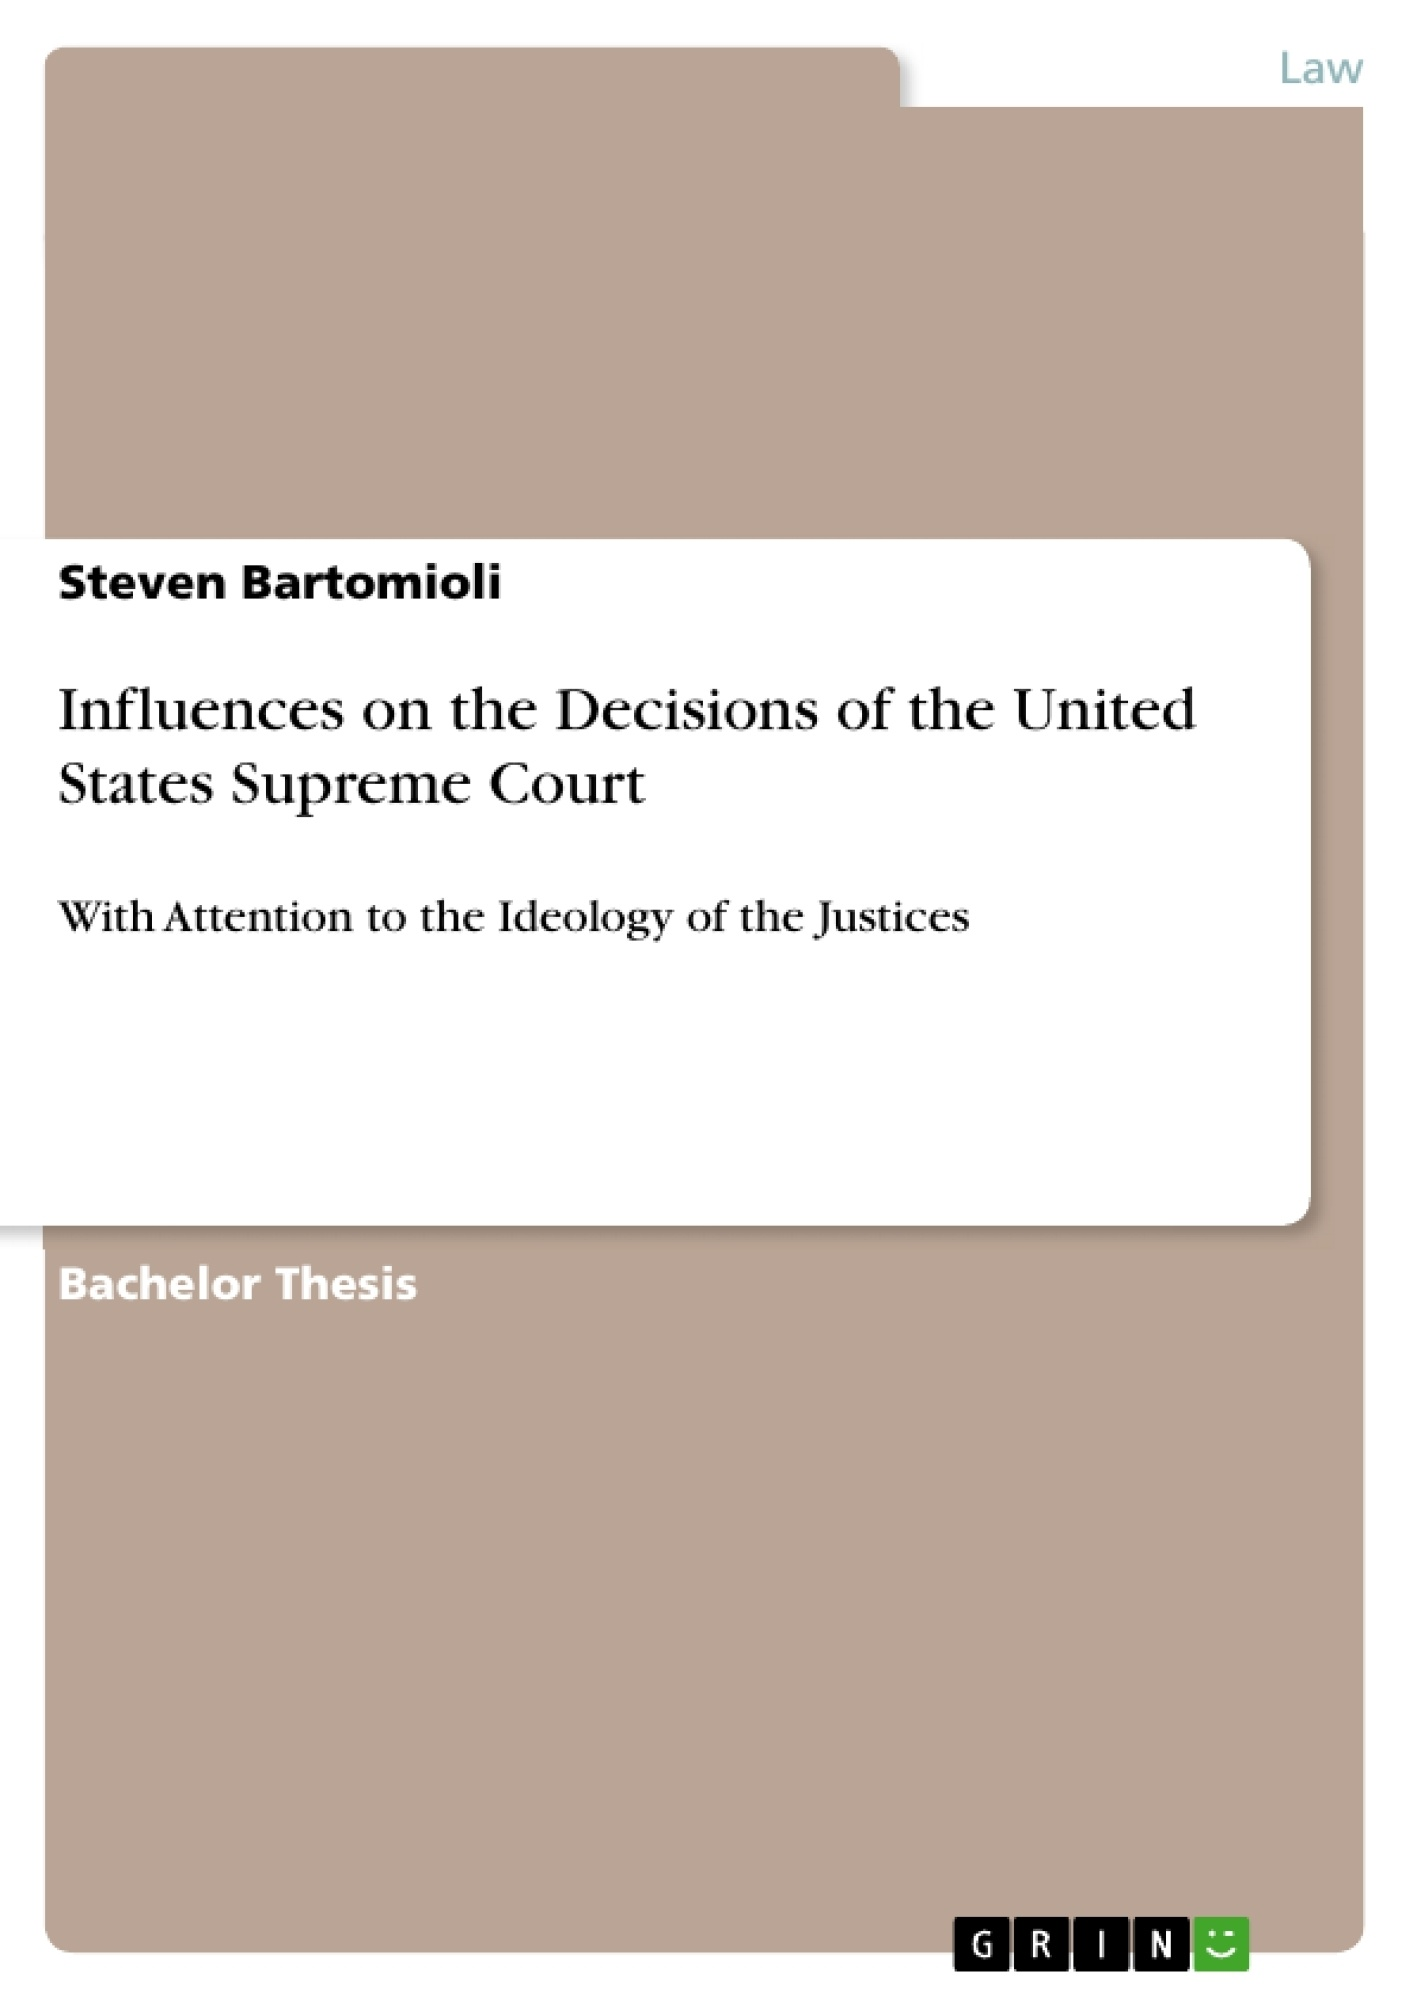 Title: Influences on the Decisions of the United States Supreme Court